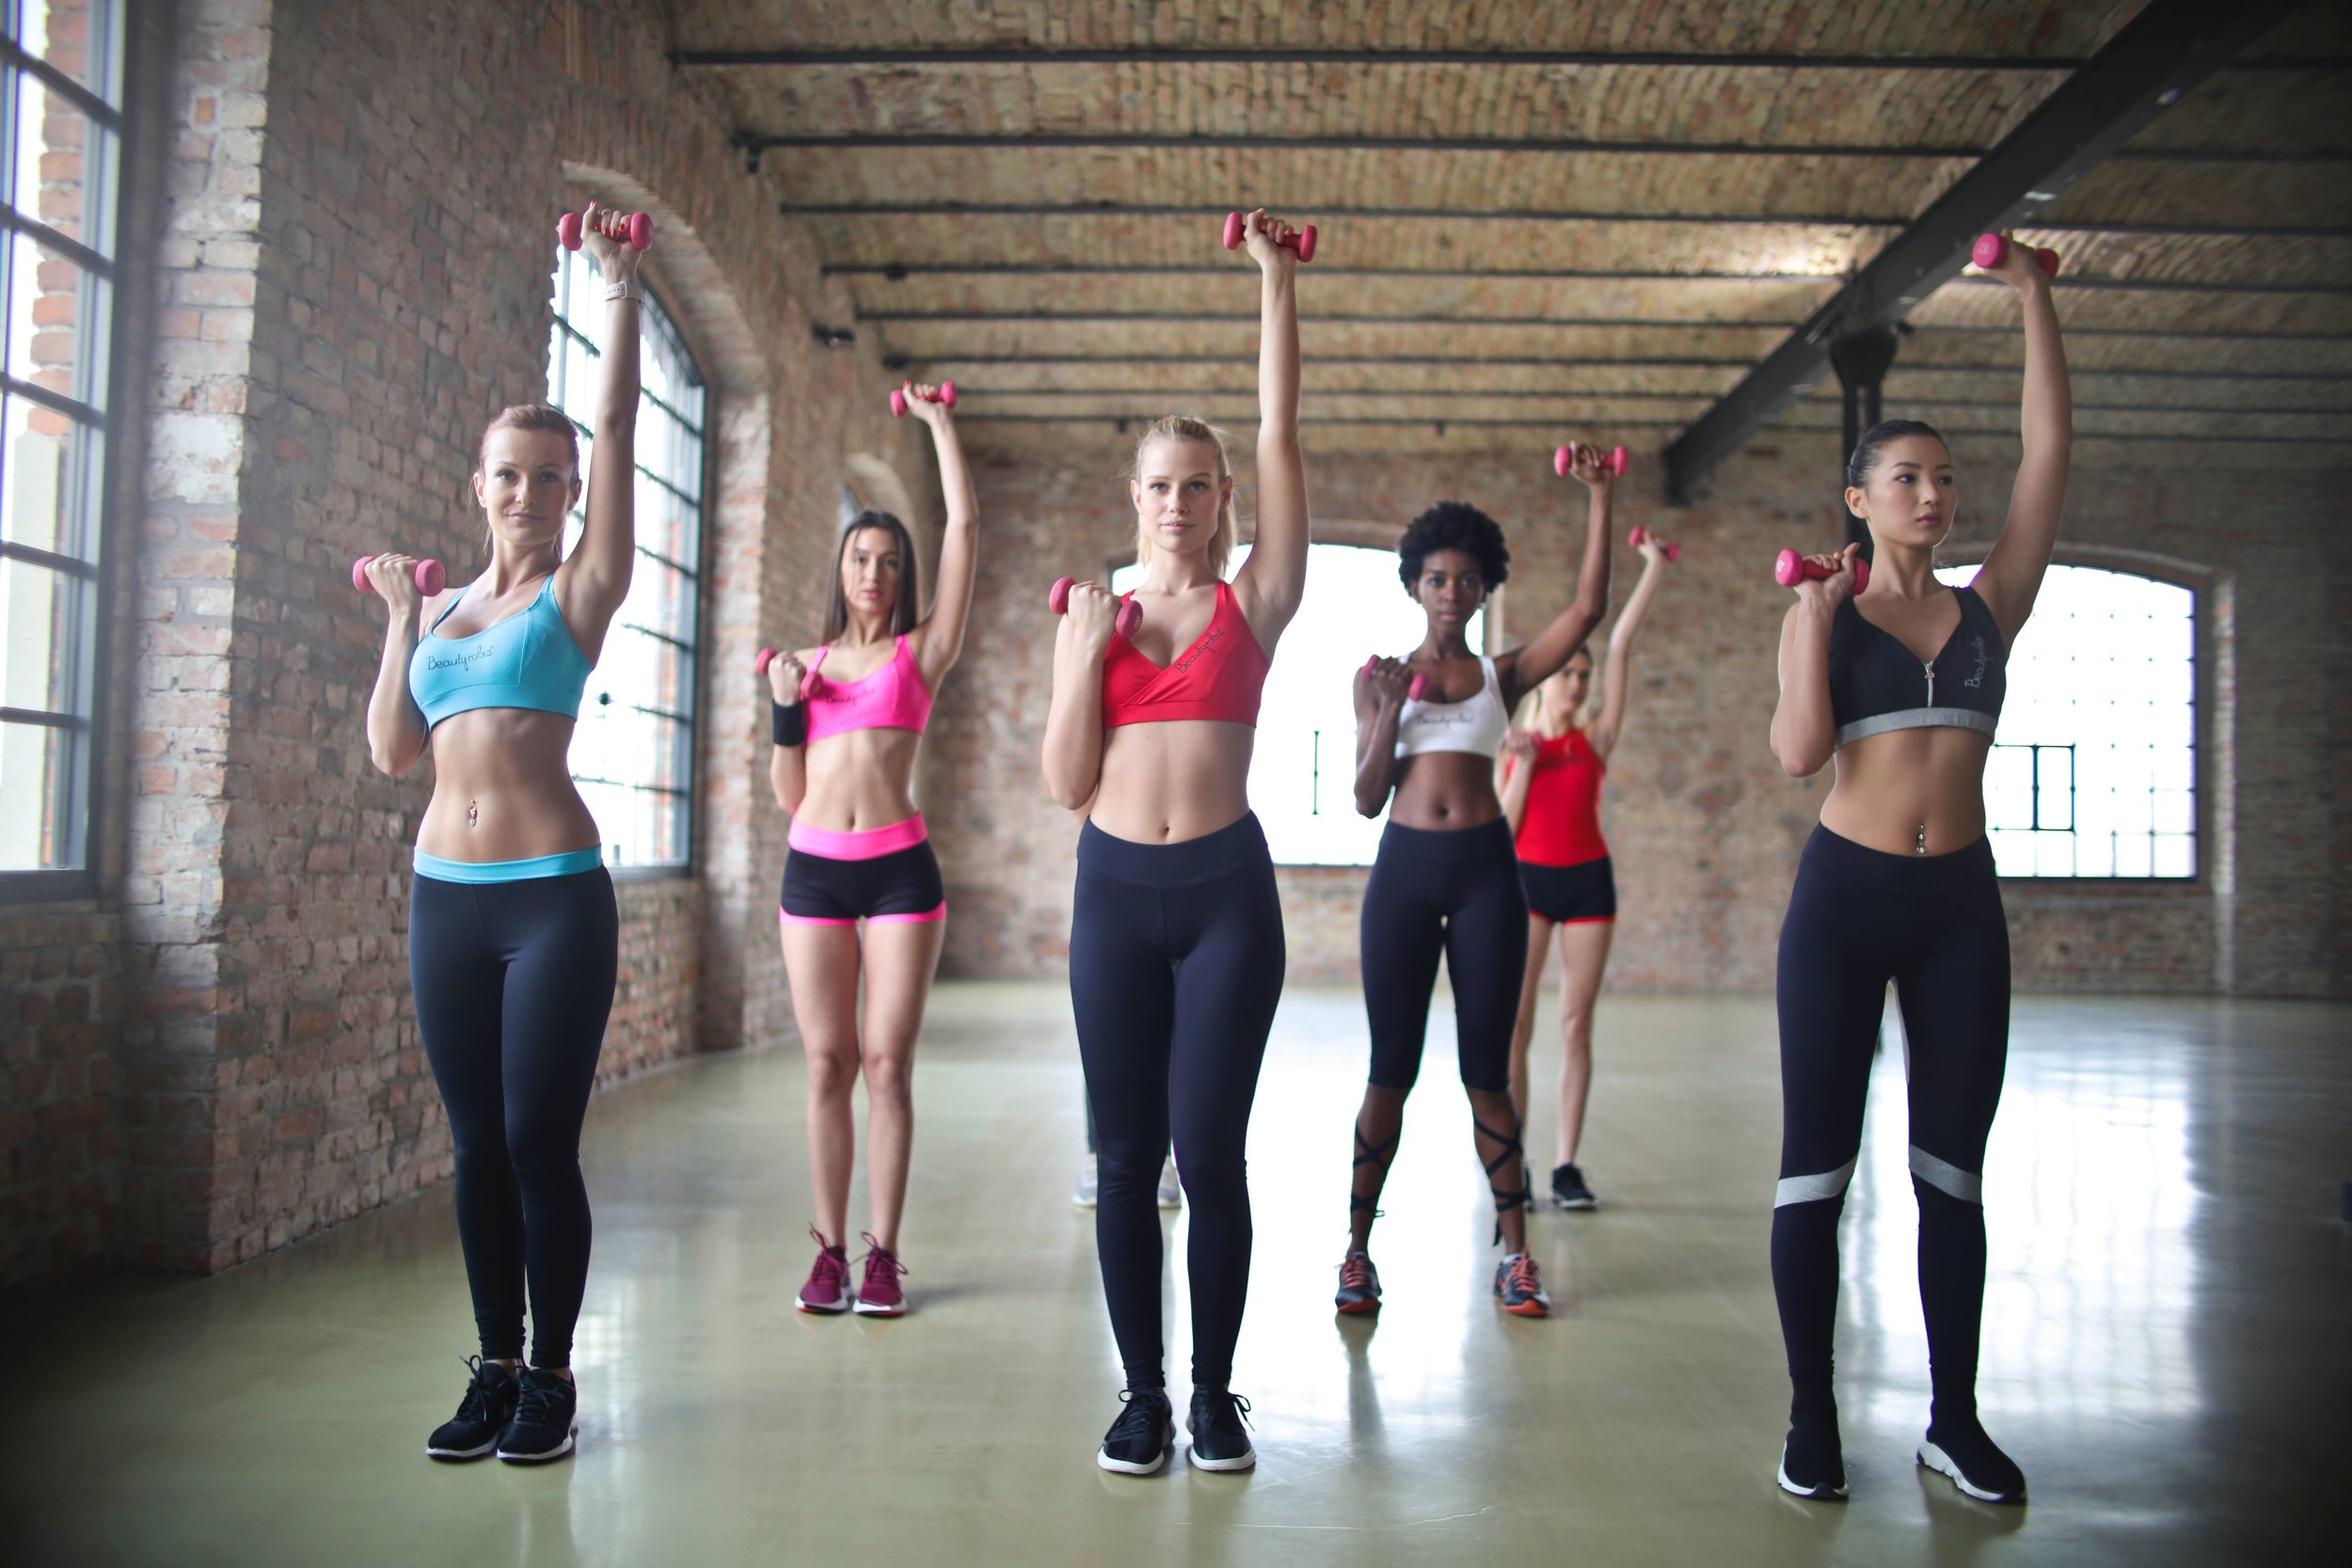 9 common fitness myths/mistakes that are hindering your progress